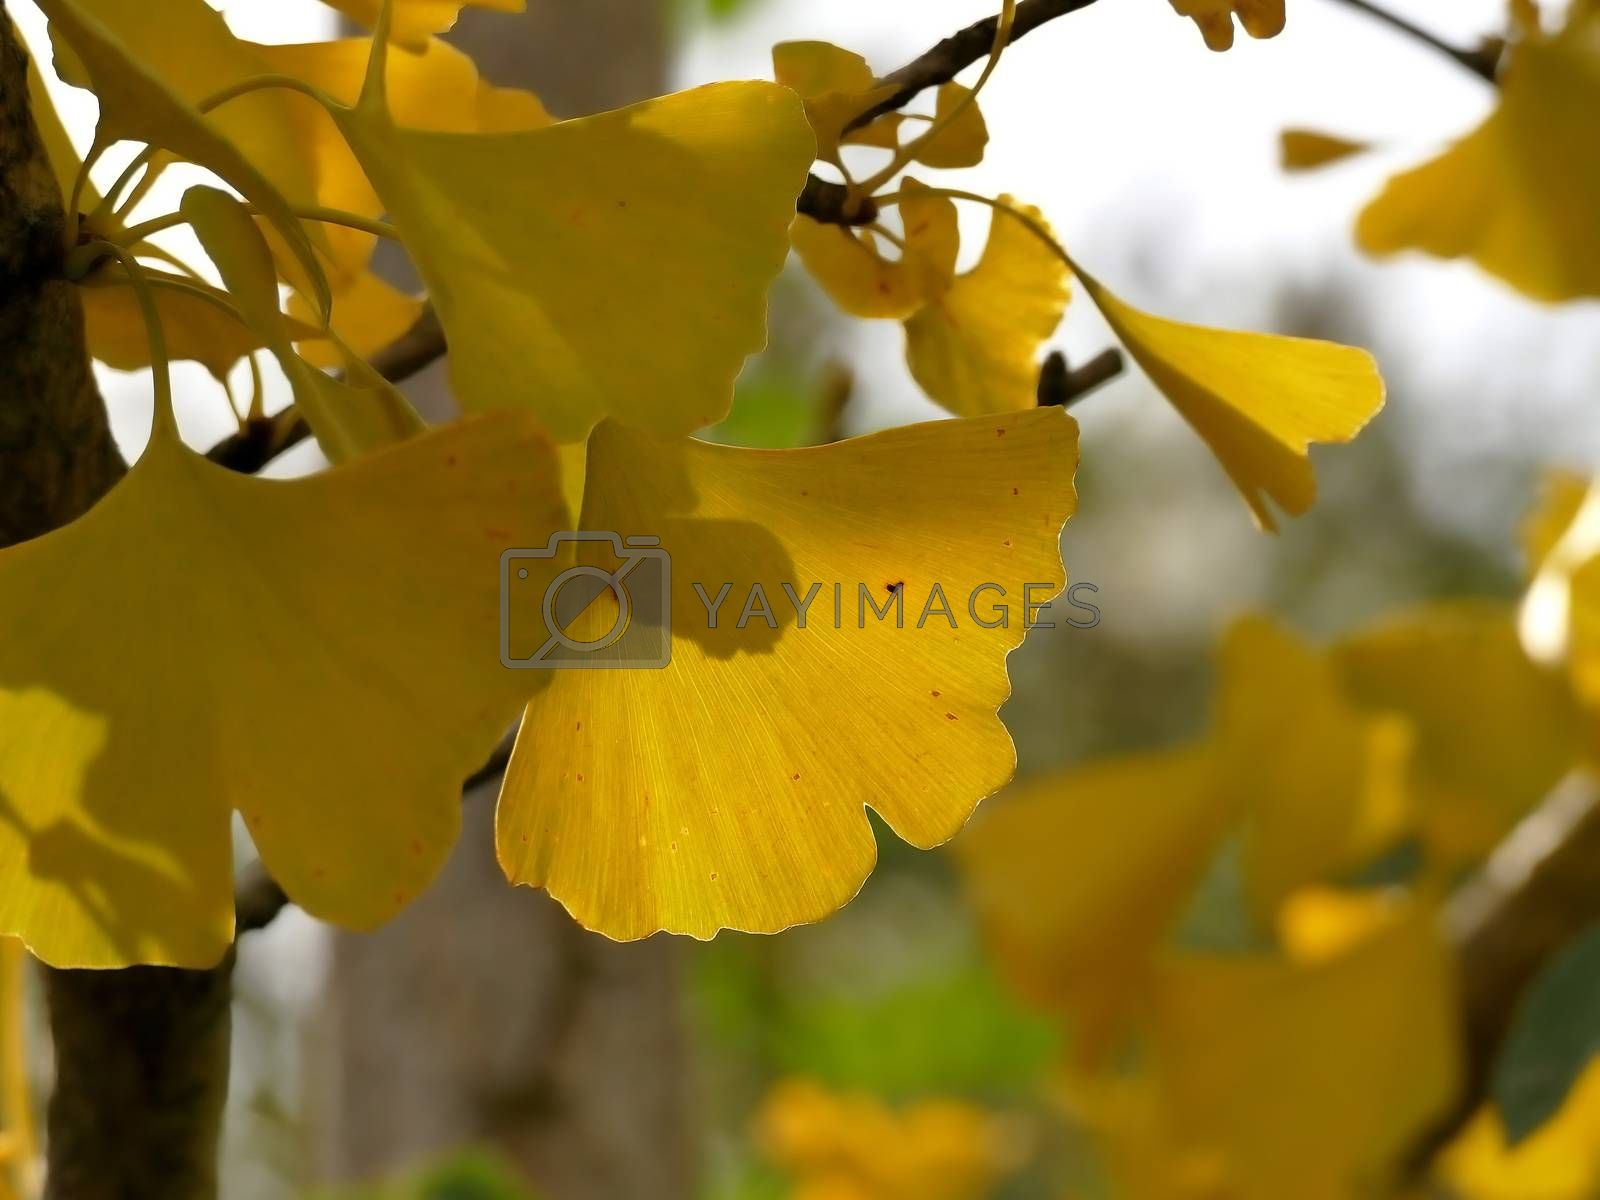 autumnal colored ginkgo leaf in backlit